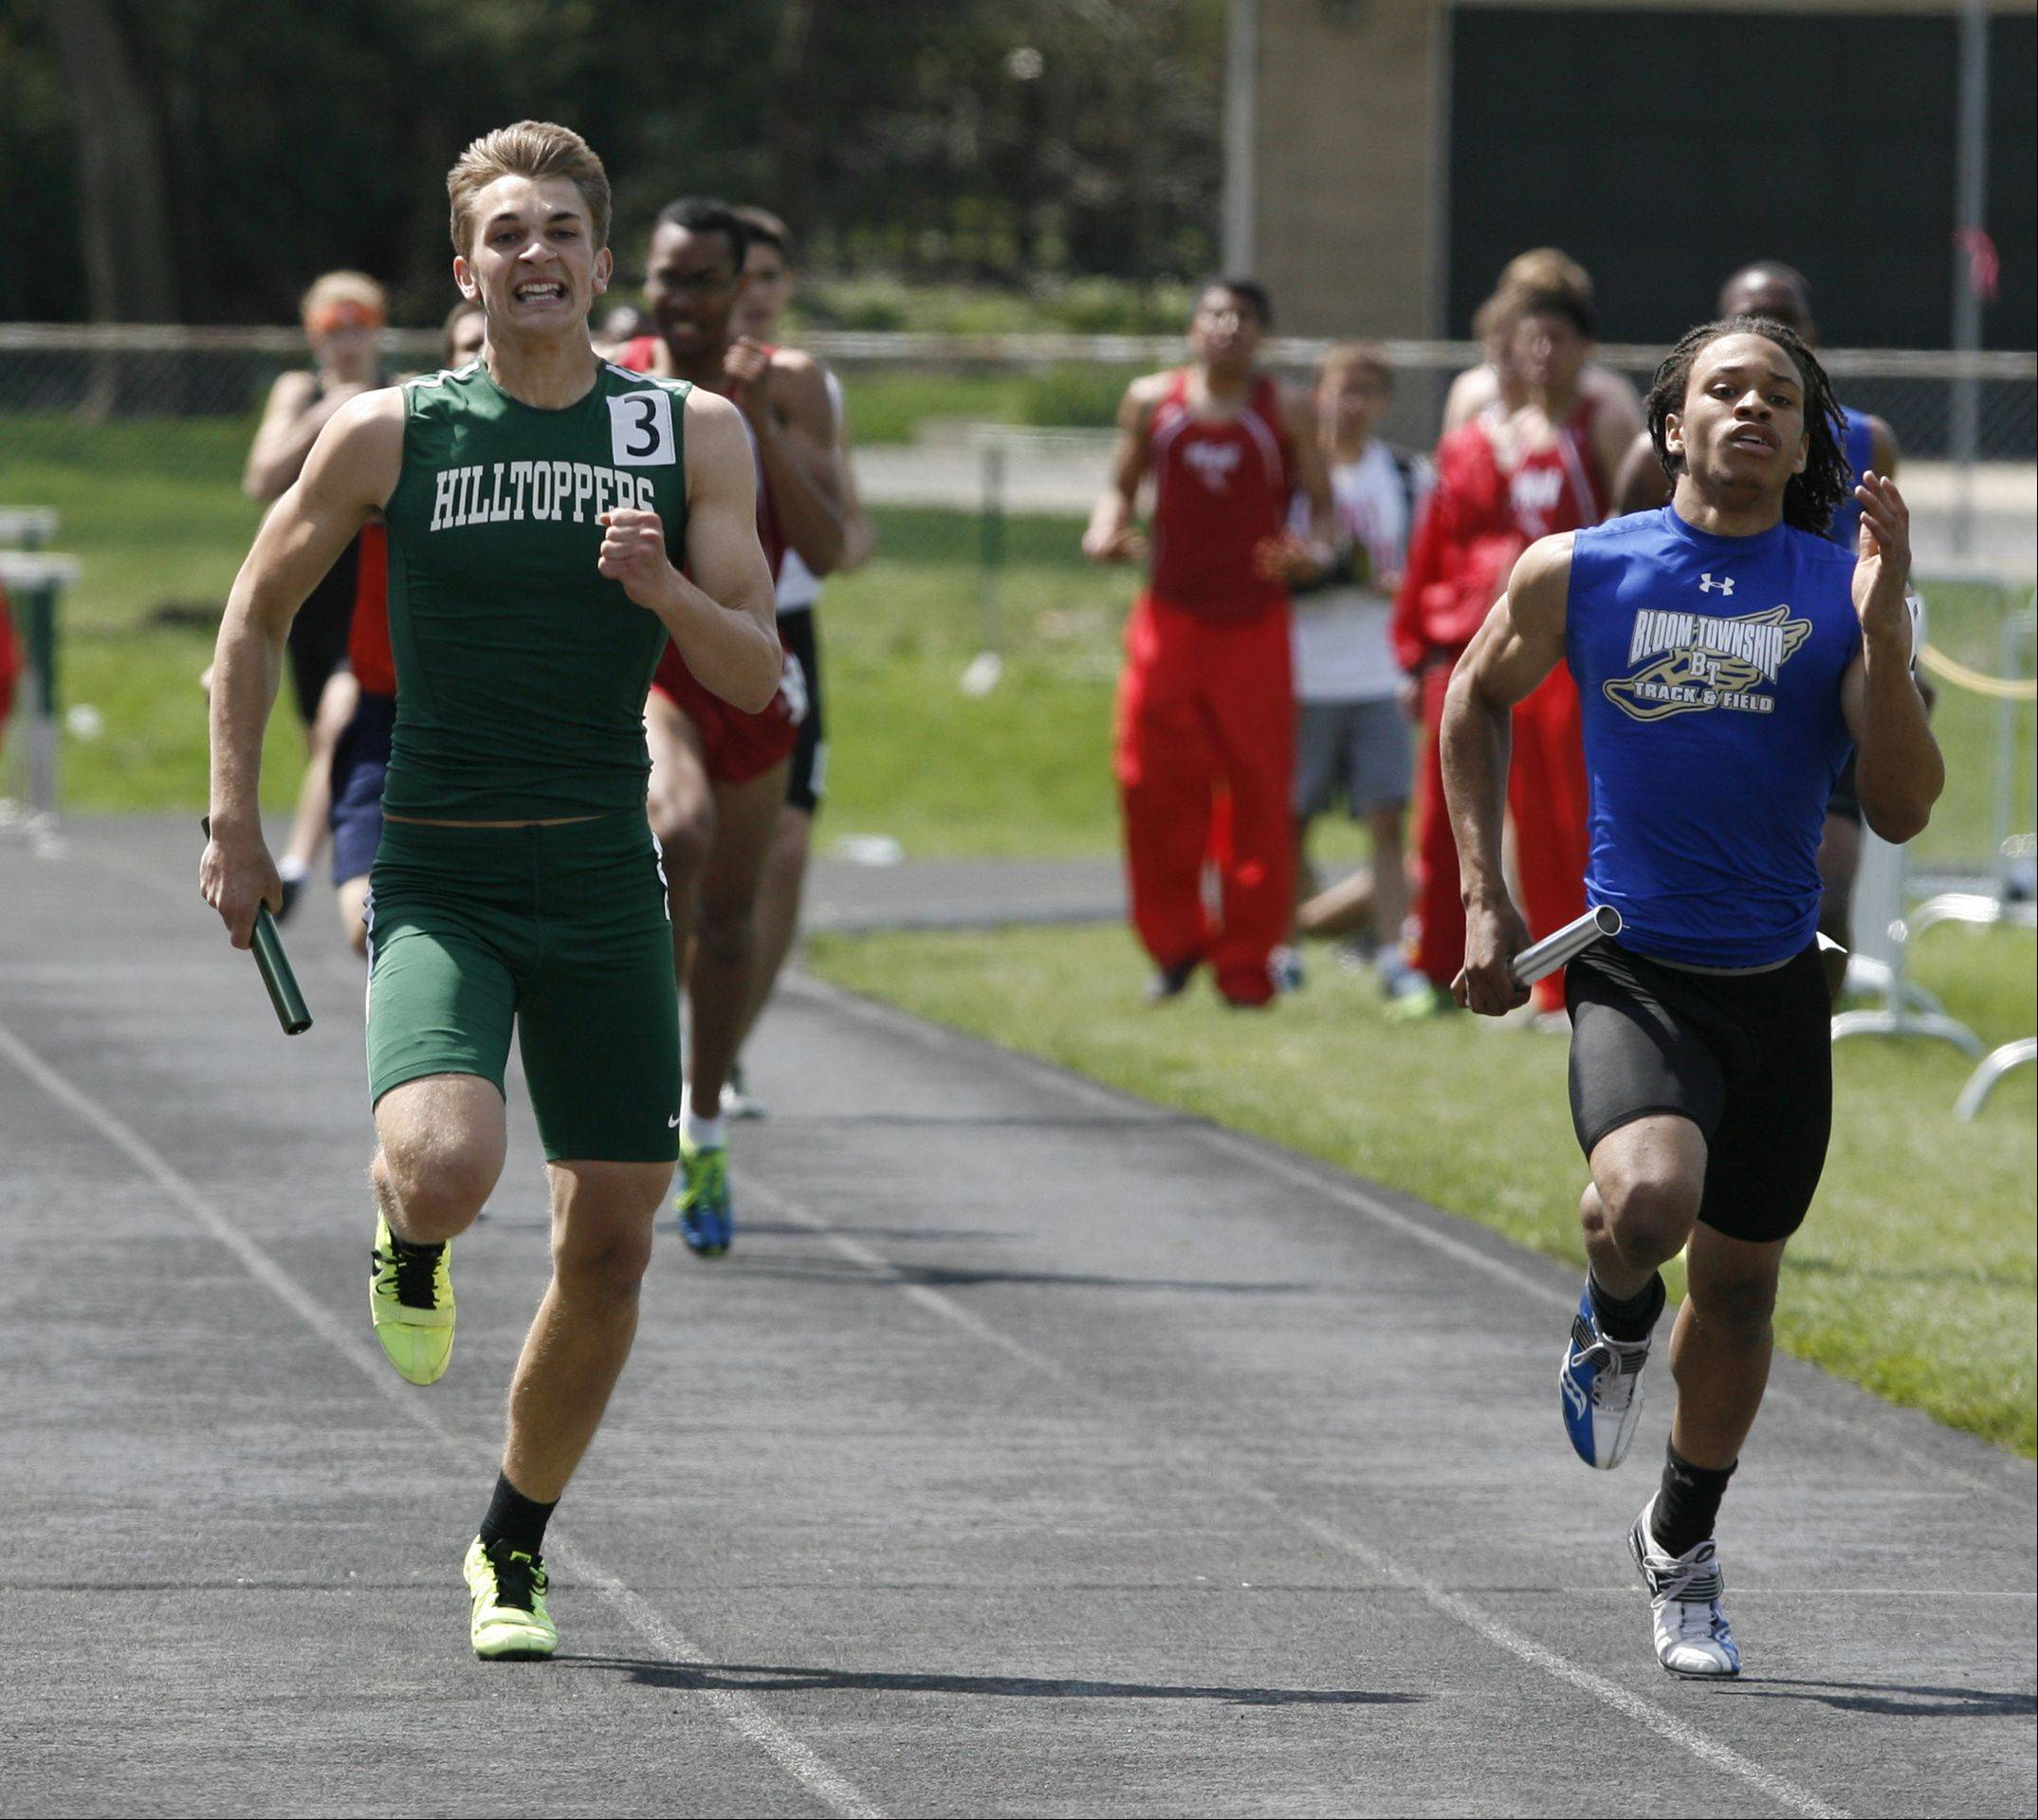 Glenbard West's Connor Schrauth, left, anchors the 4 x 400 meter relay, during the final heat of the Glenbard West boys track invitational.